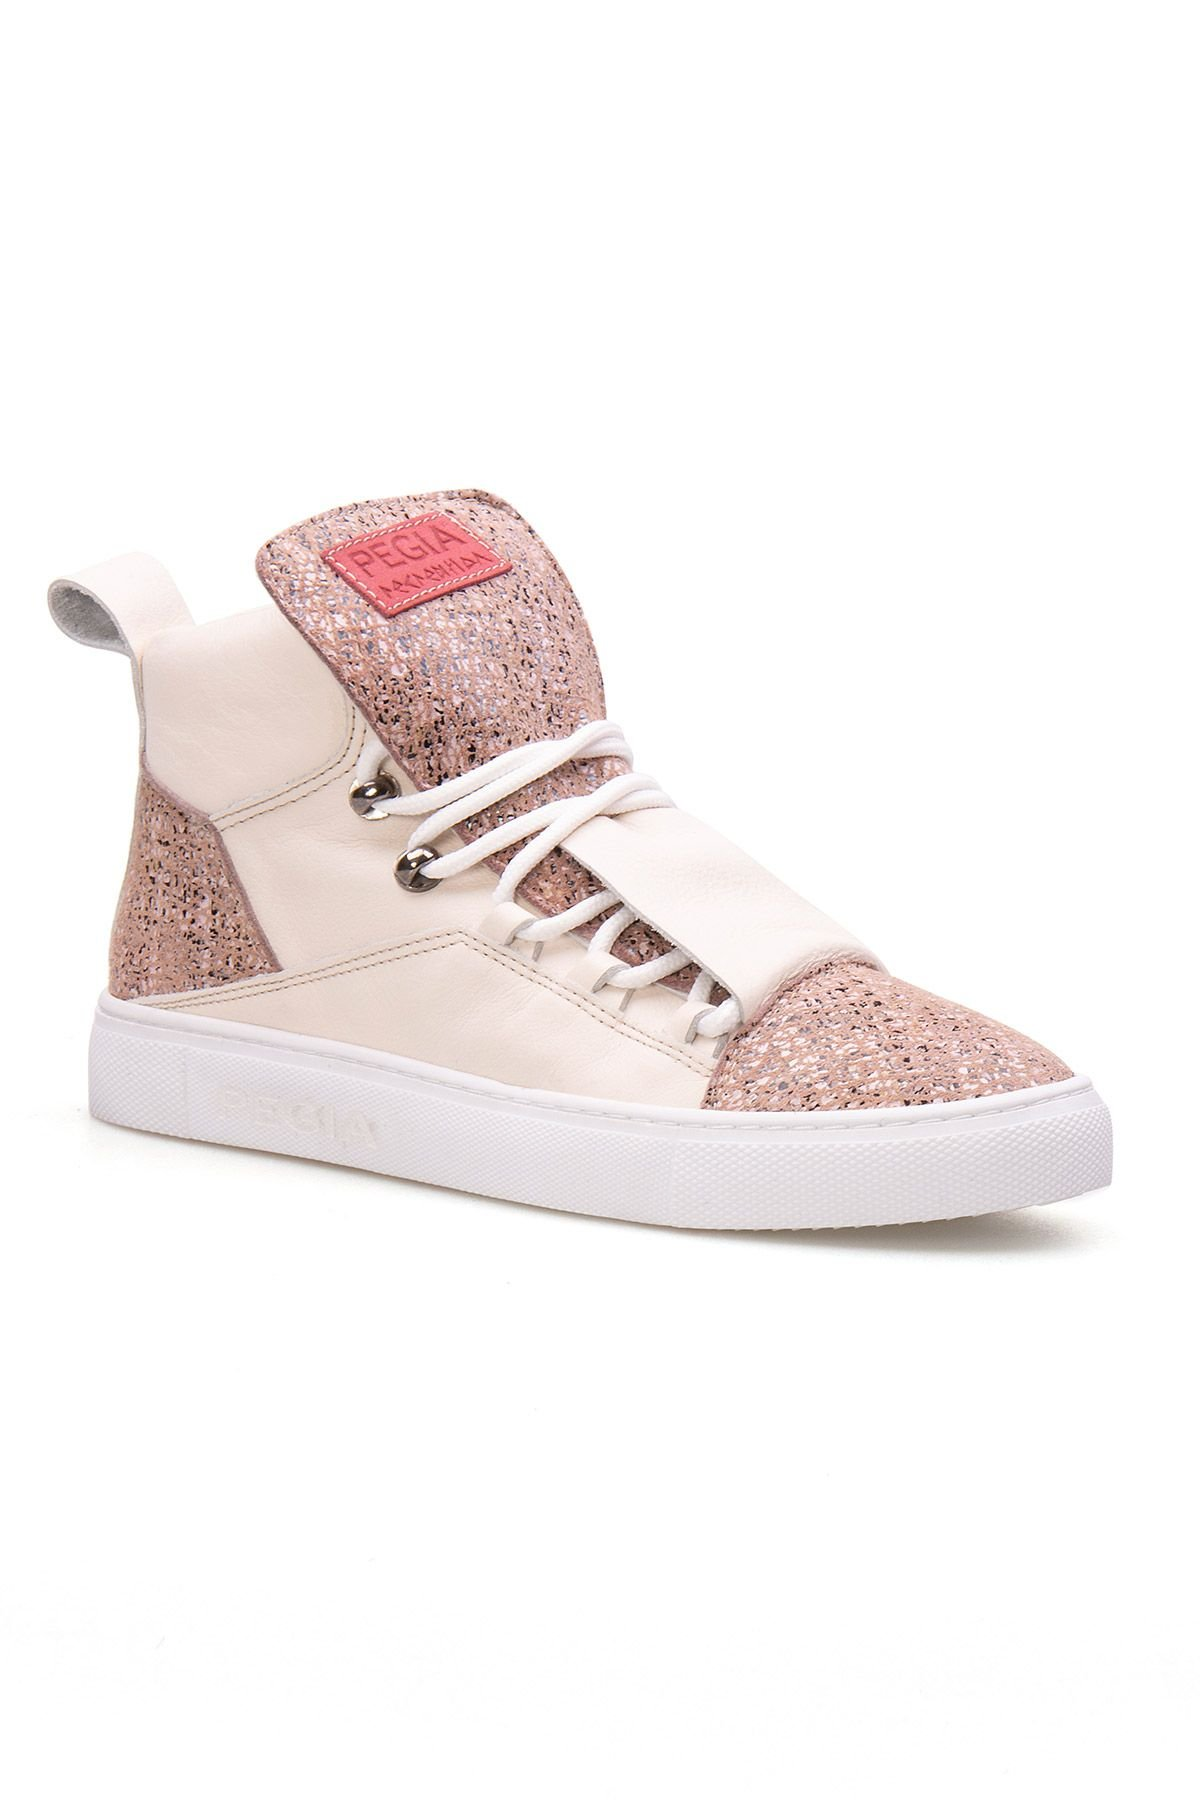 Pegia Genuine Leather Women's Sneaker LA1310 Beige